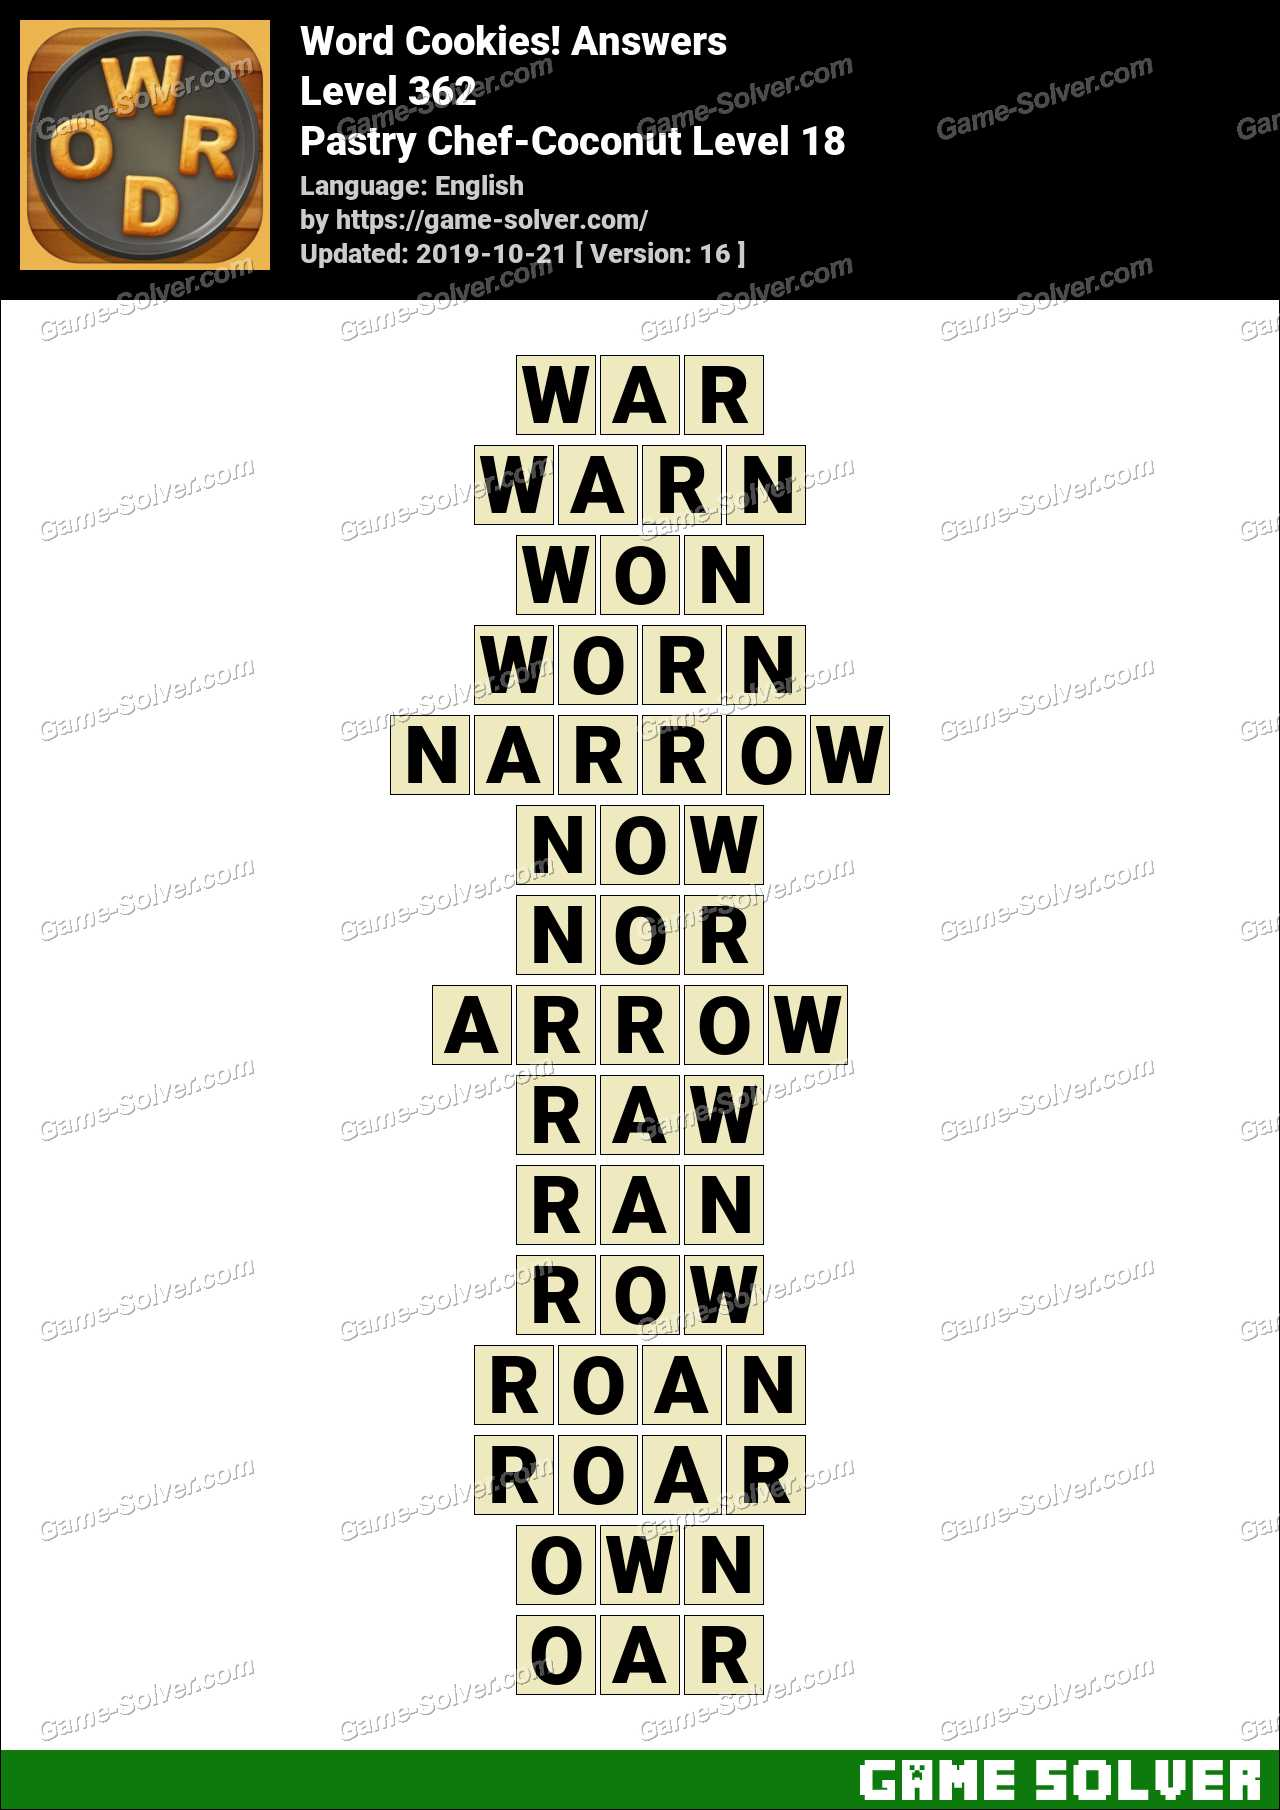 Word Cookies Pastry Chef-Coconut Level 18 Answers